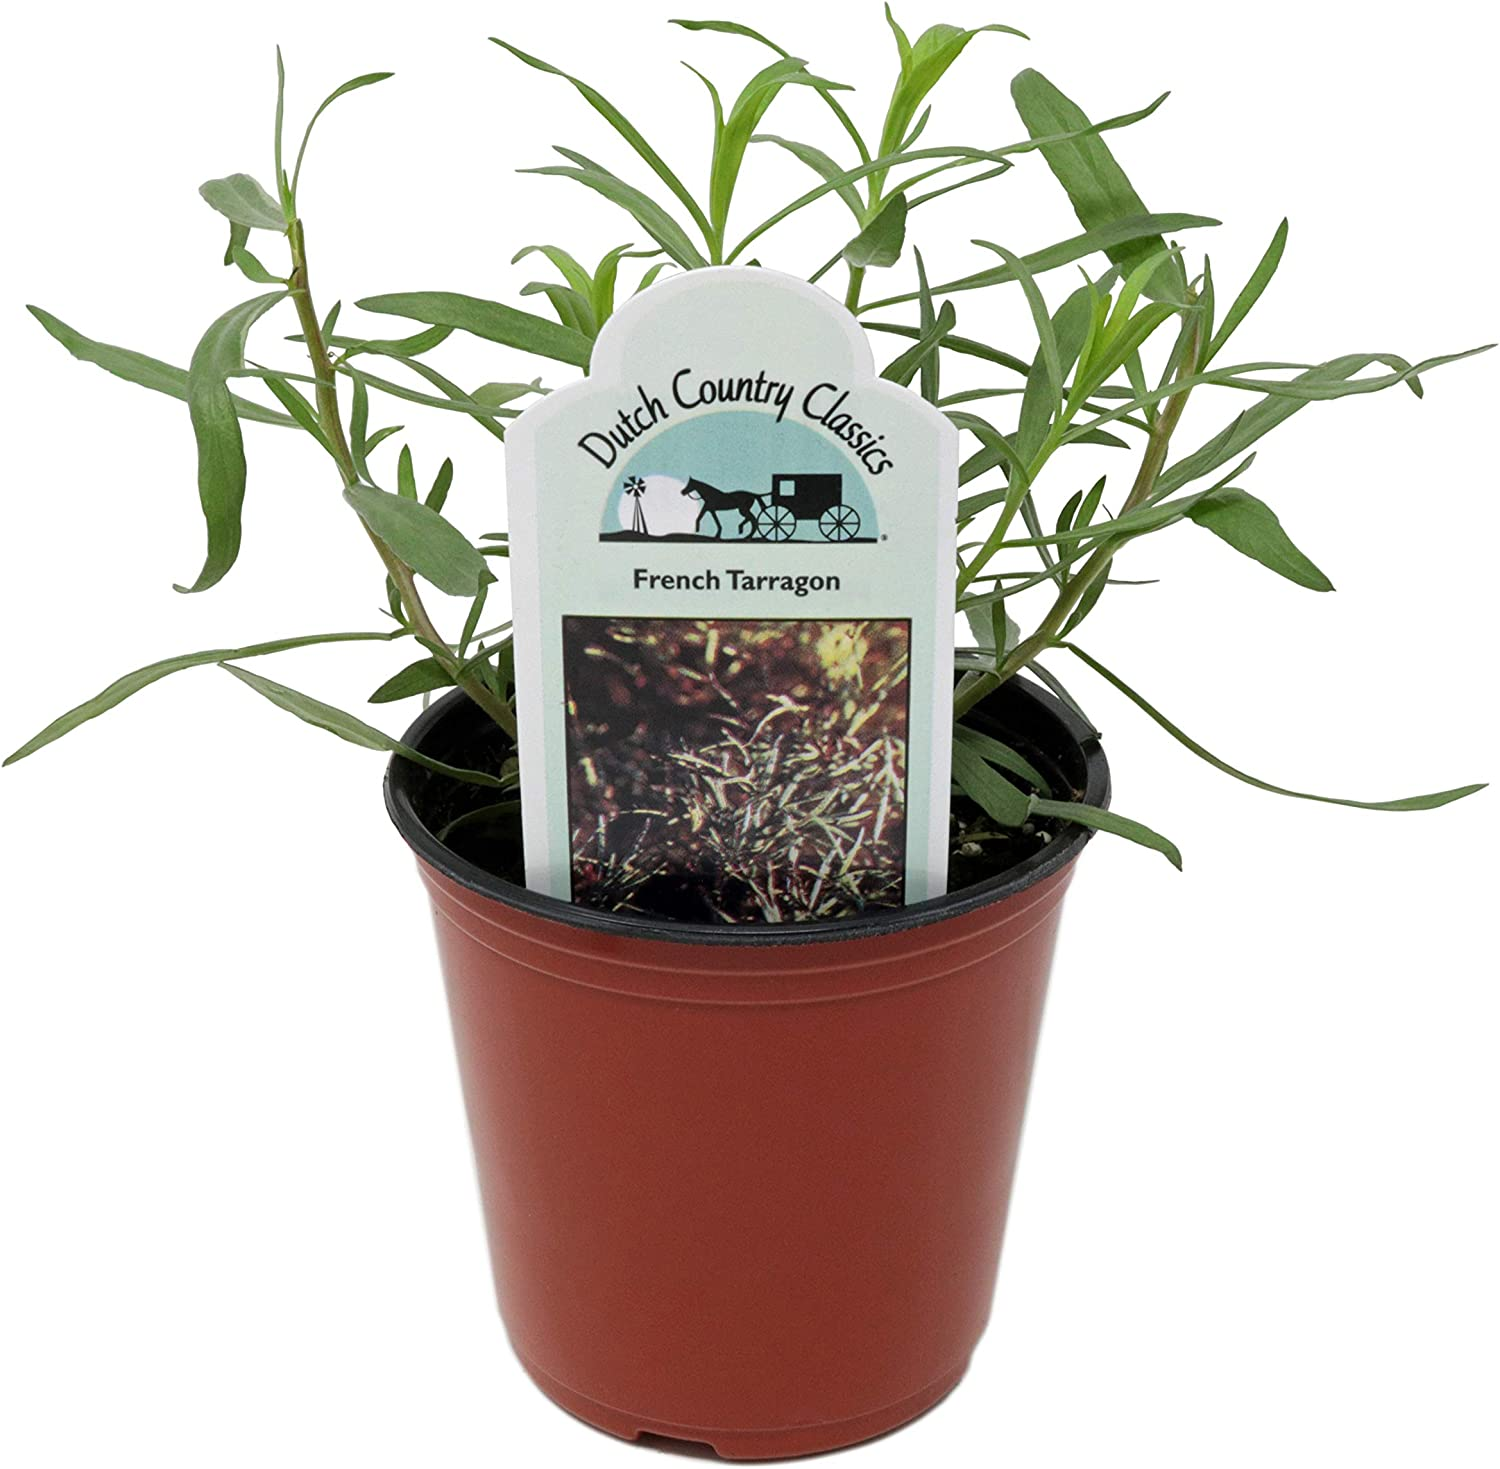 Dutch Country Classics Live French Tarragon Herb Plant Pack of 1